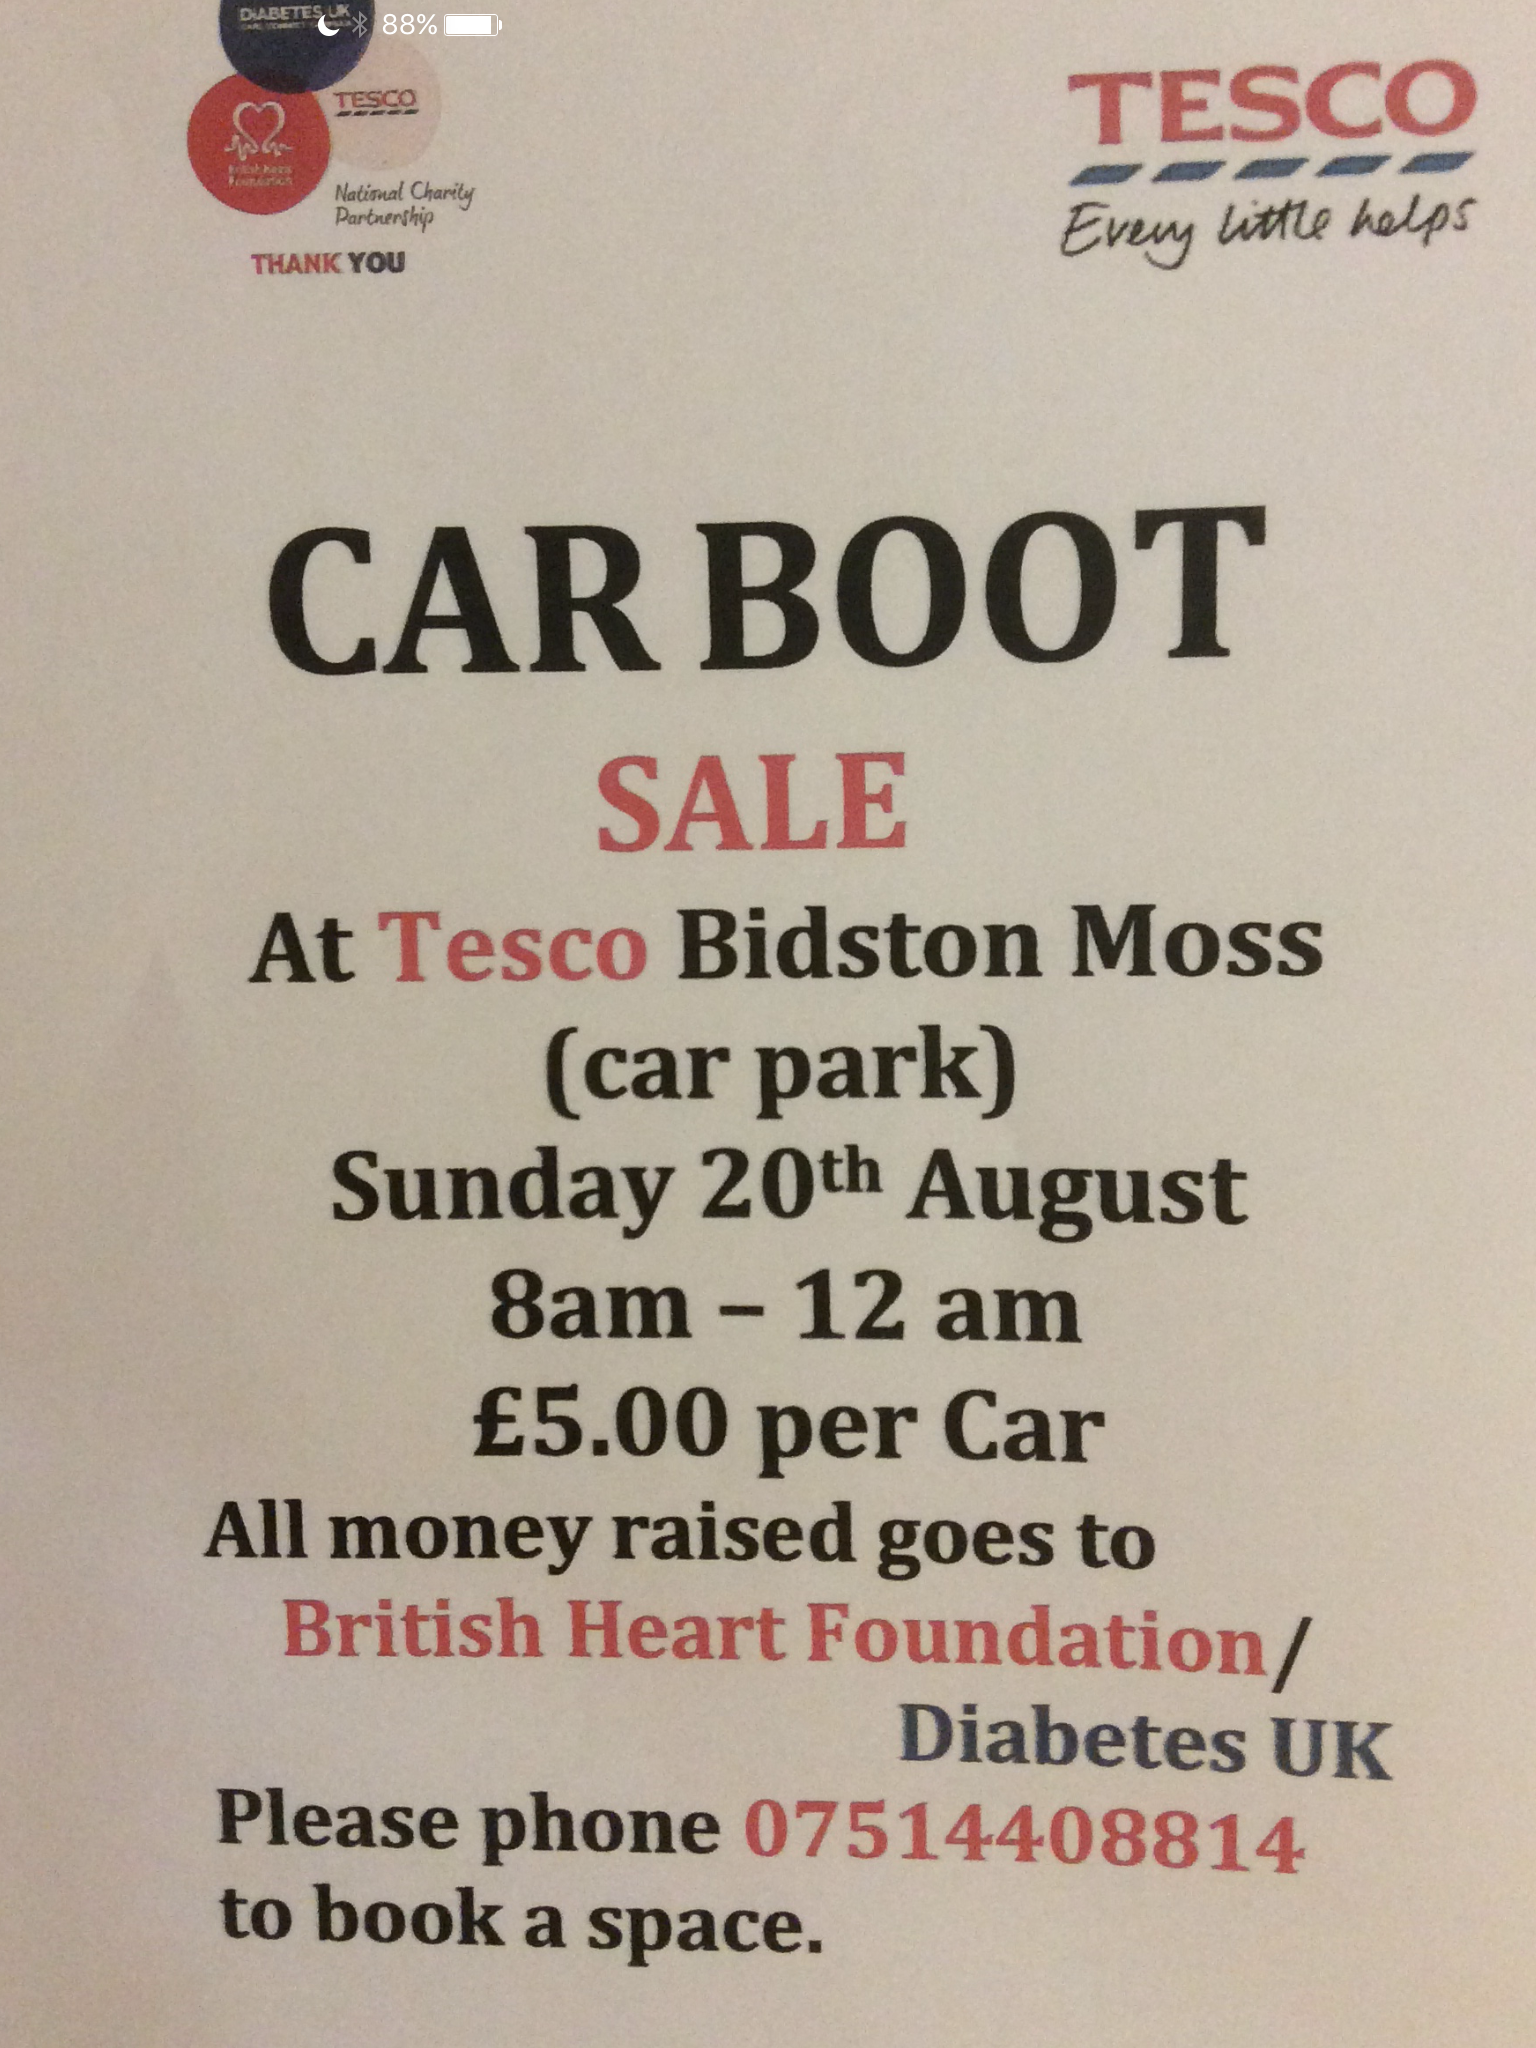 Tesco Bidstonmoss carboot